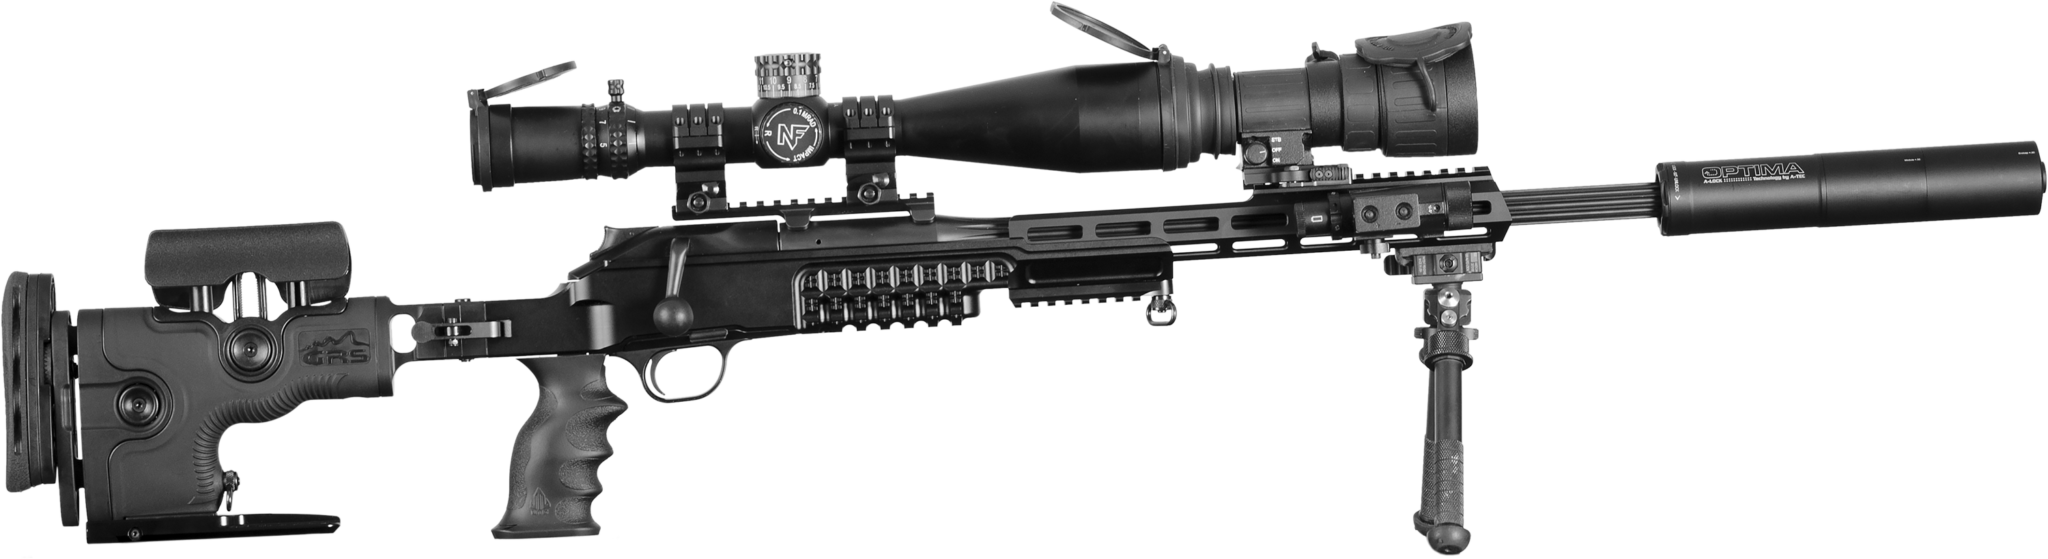 Grs Ragnarok Rightview Rifle Blaser R8